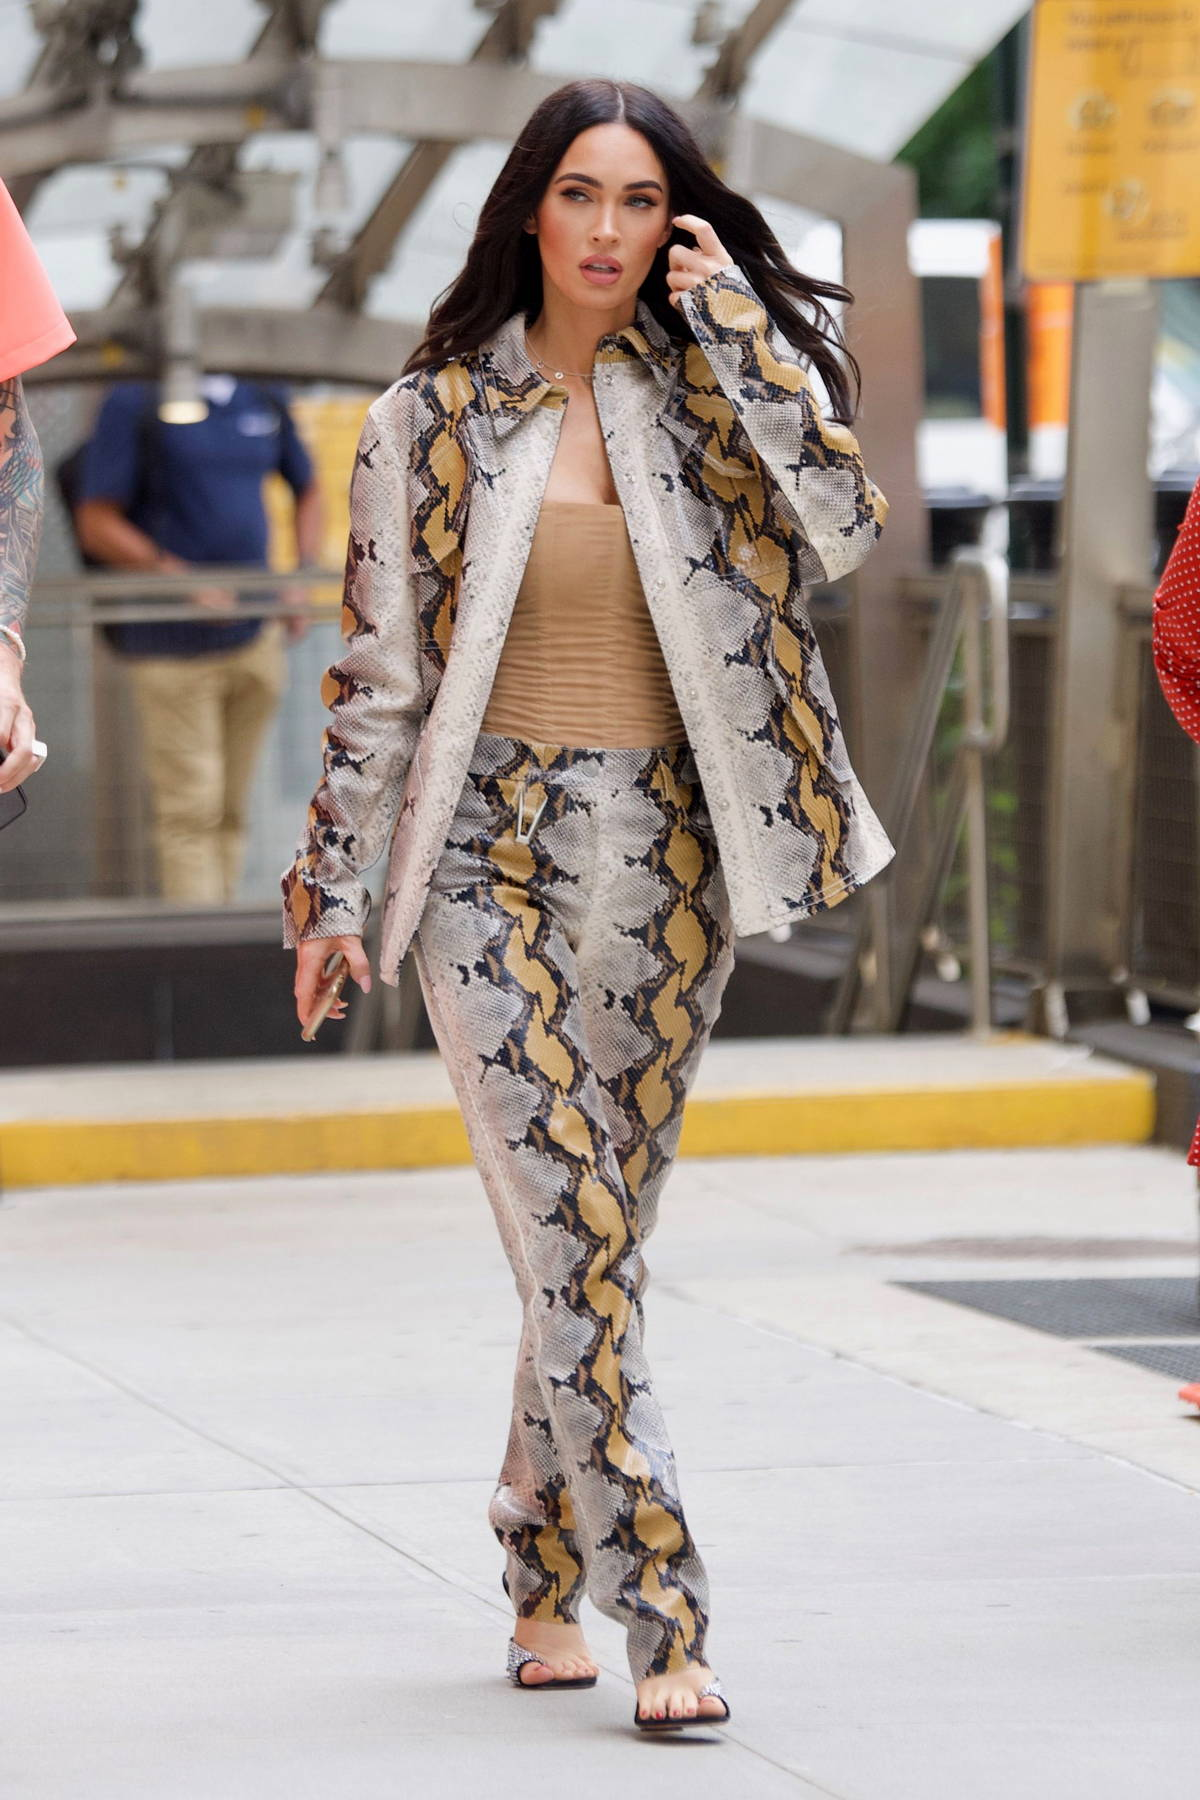 Megan Fox looks fantastic in a snakeskin print jacket with matching pants as she steps out with Machine Gun Kelly in New York City